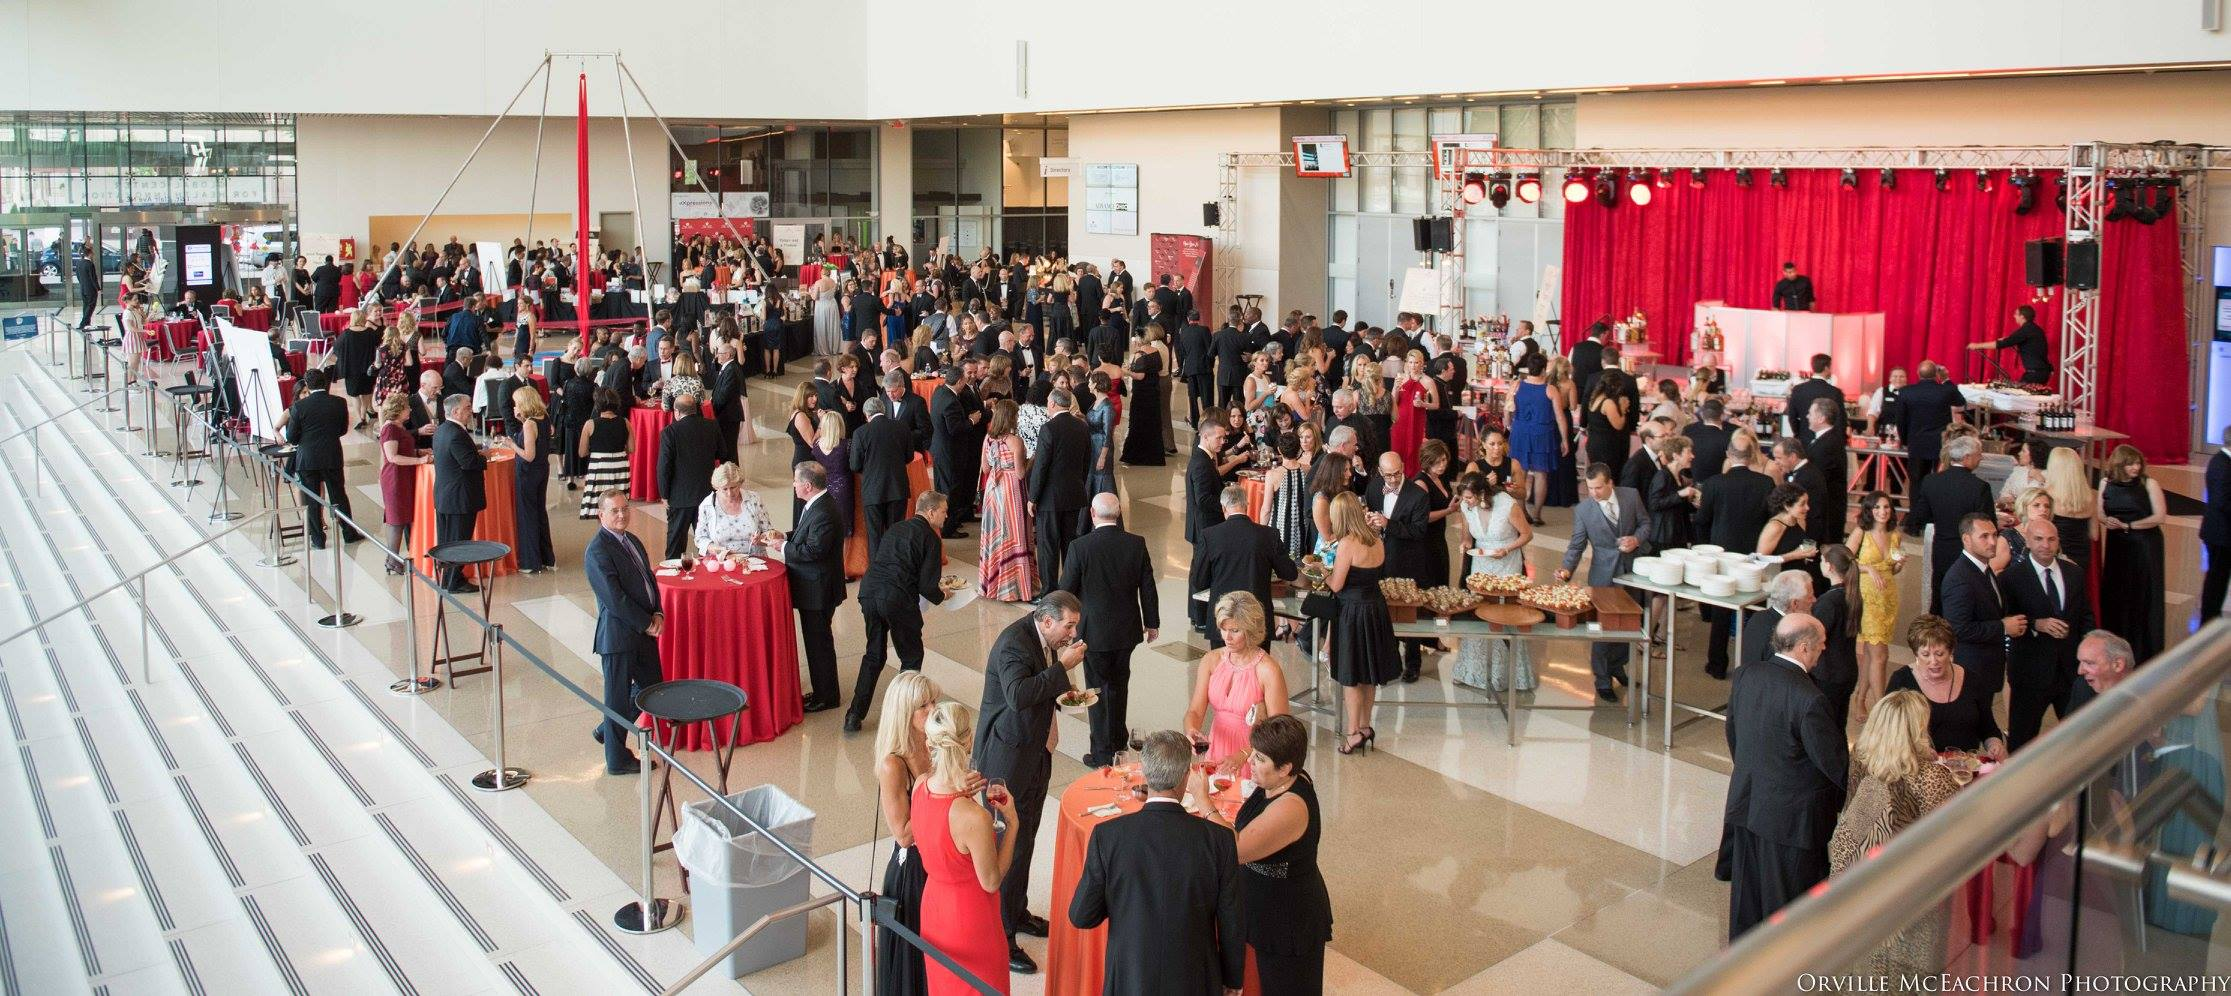 Guests filled the atrium at the Global Center for Health Innovation on June 11 for The Cleveland AHA's Annual Heart and Stroke Ball